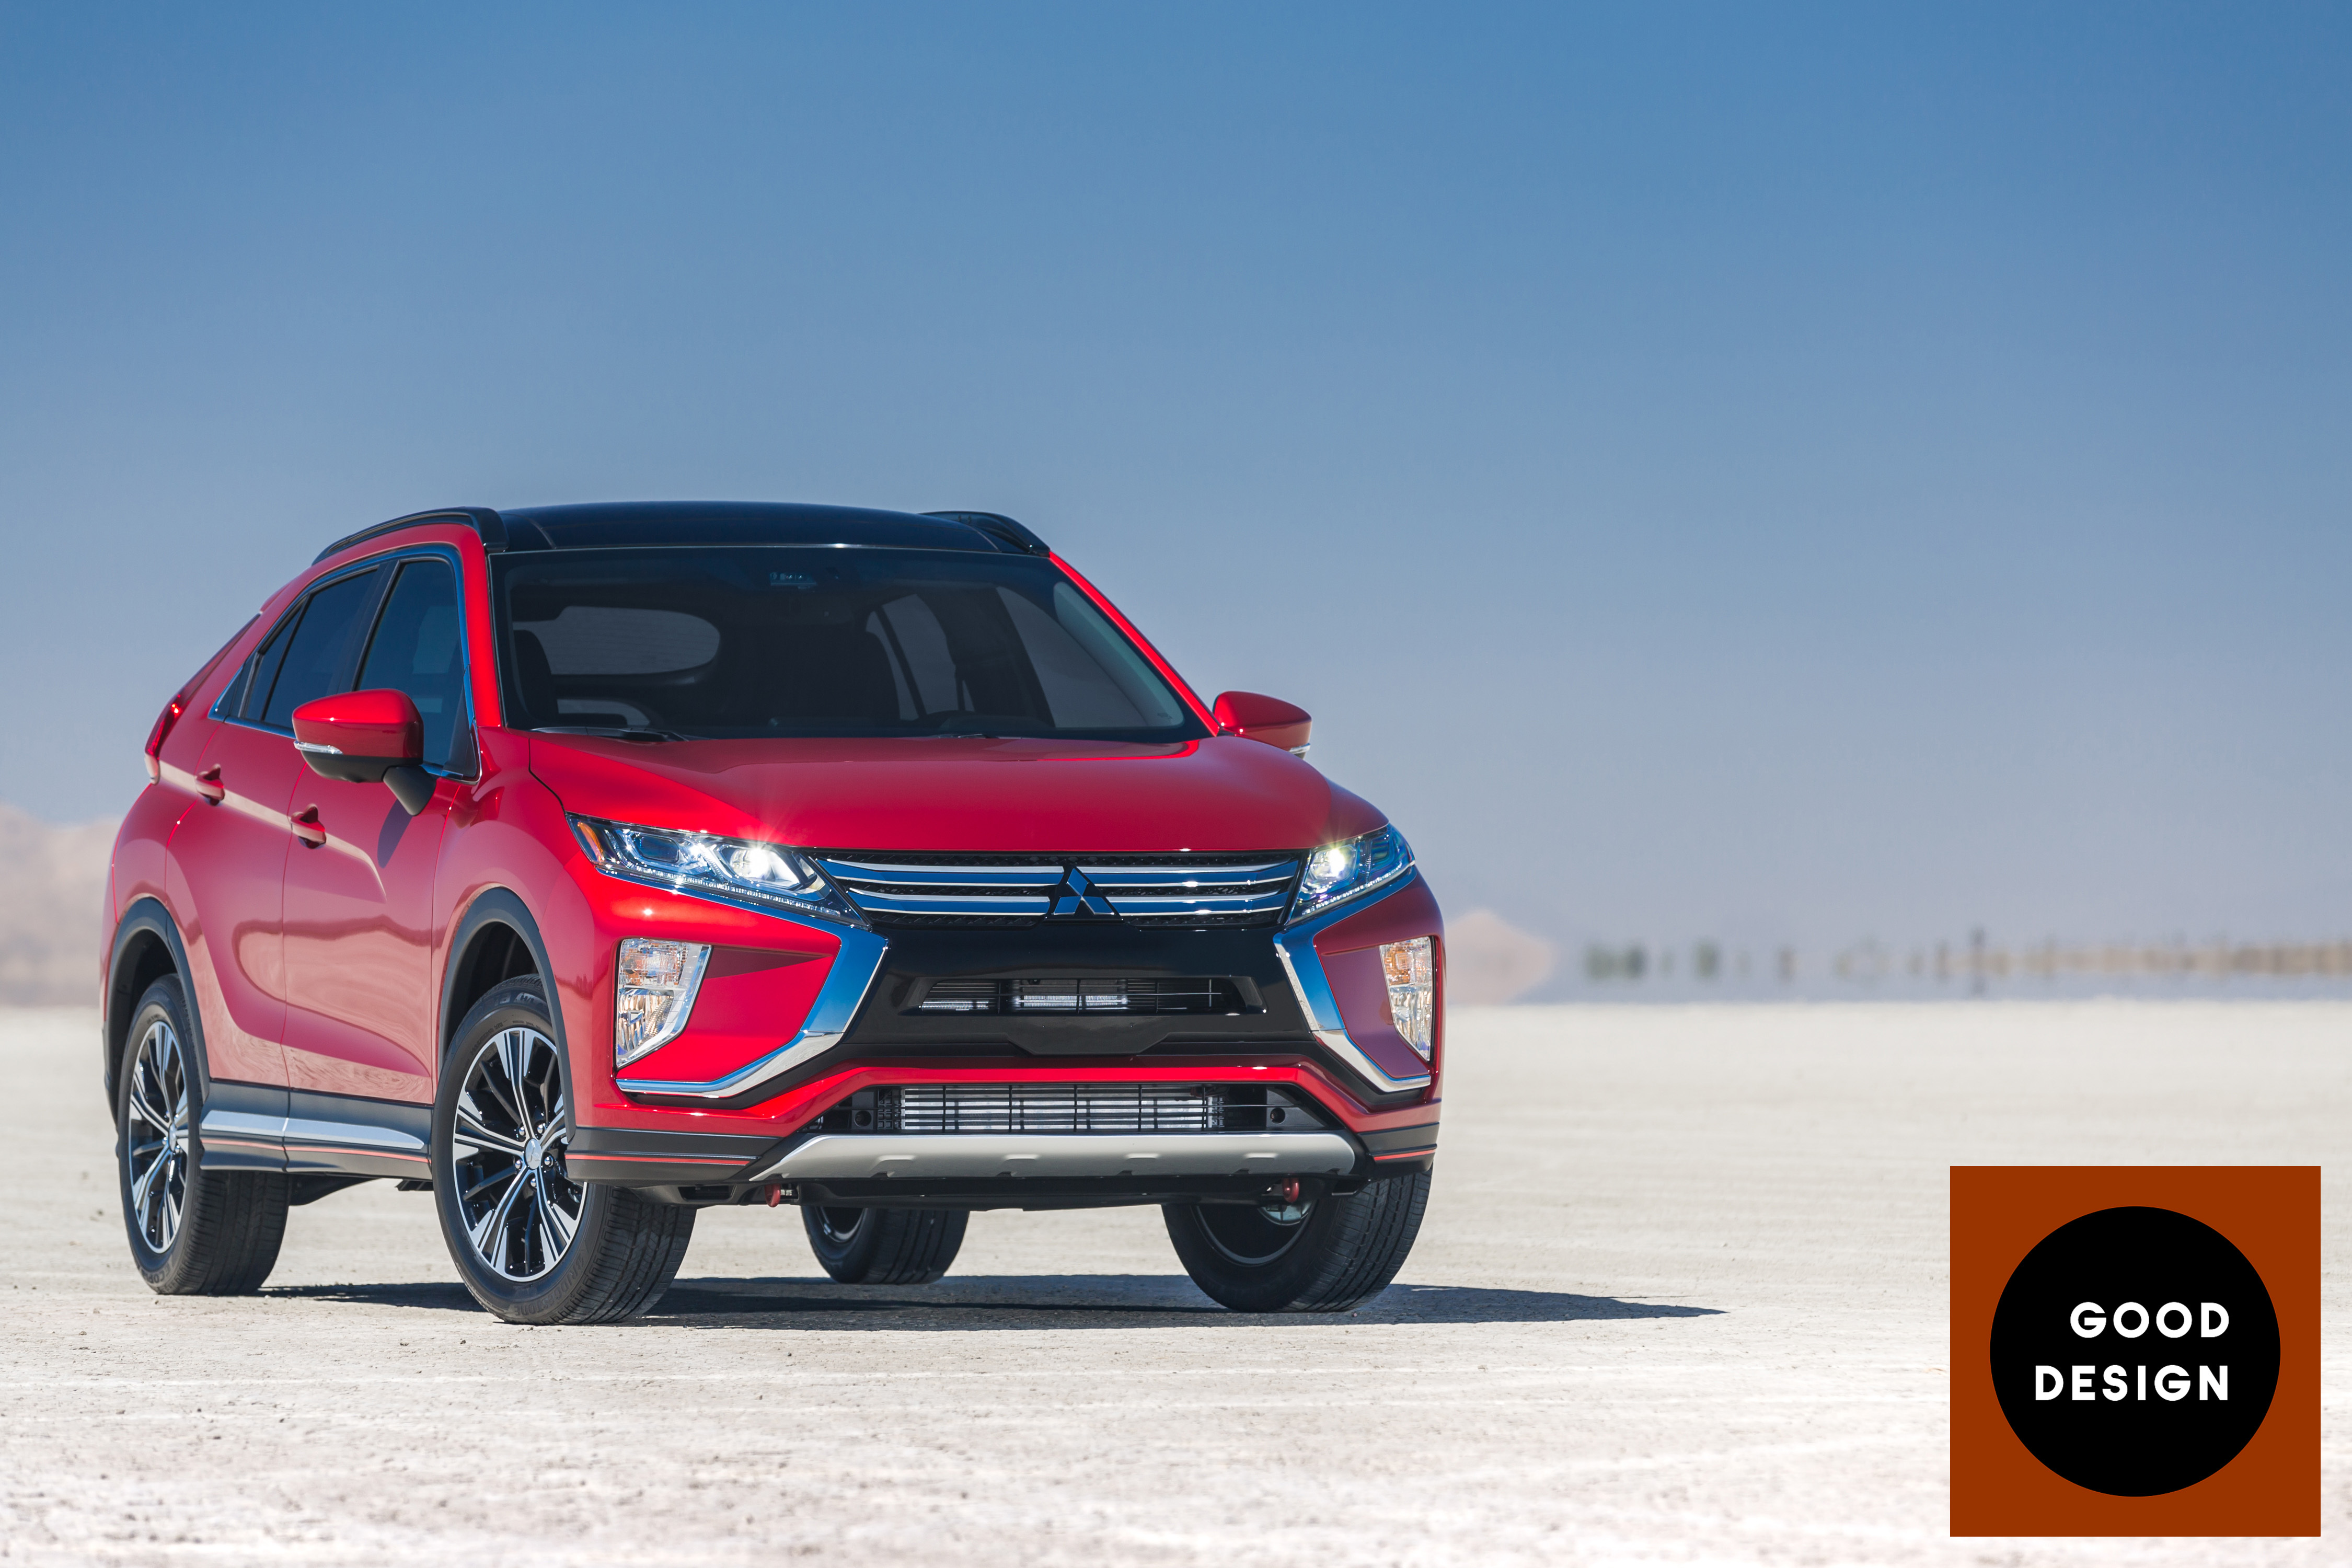 mitsubishi to improvements some made crossover surely the review explorer outlander efficient img has